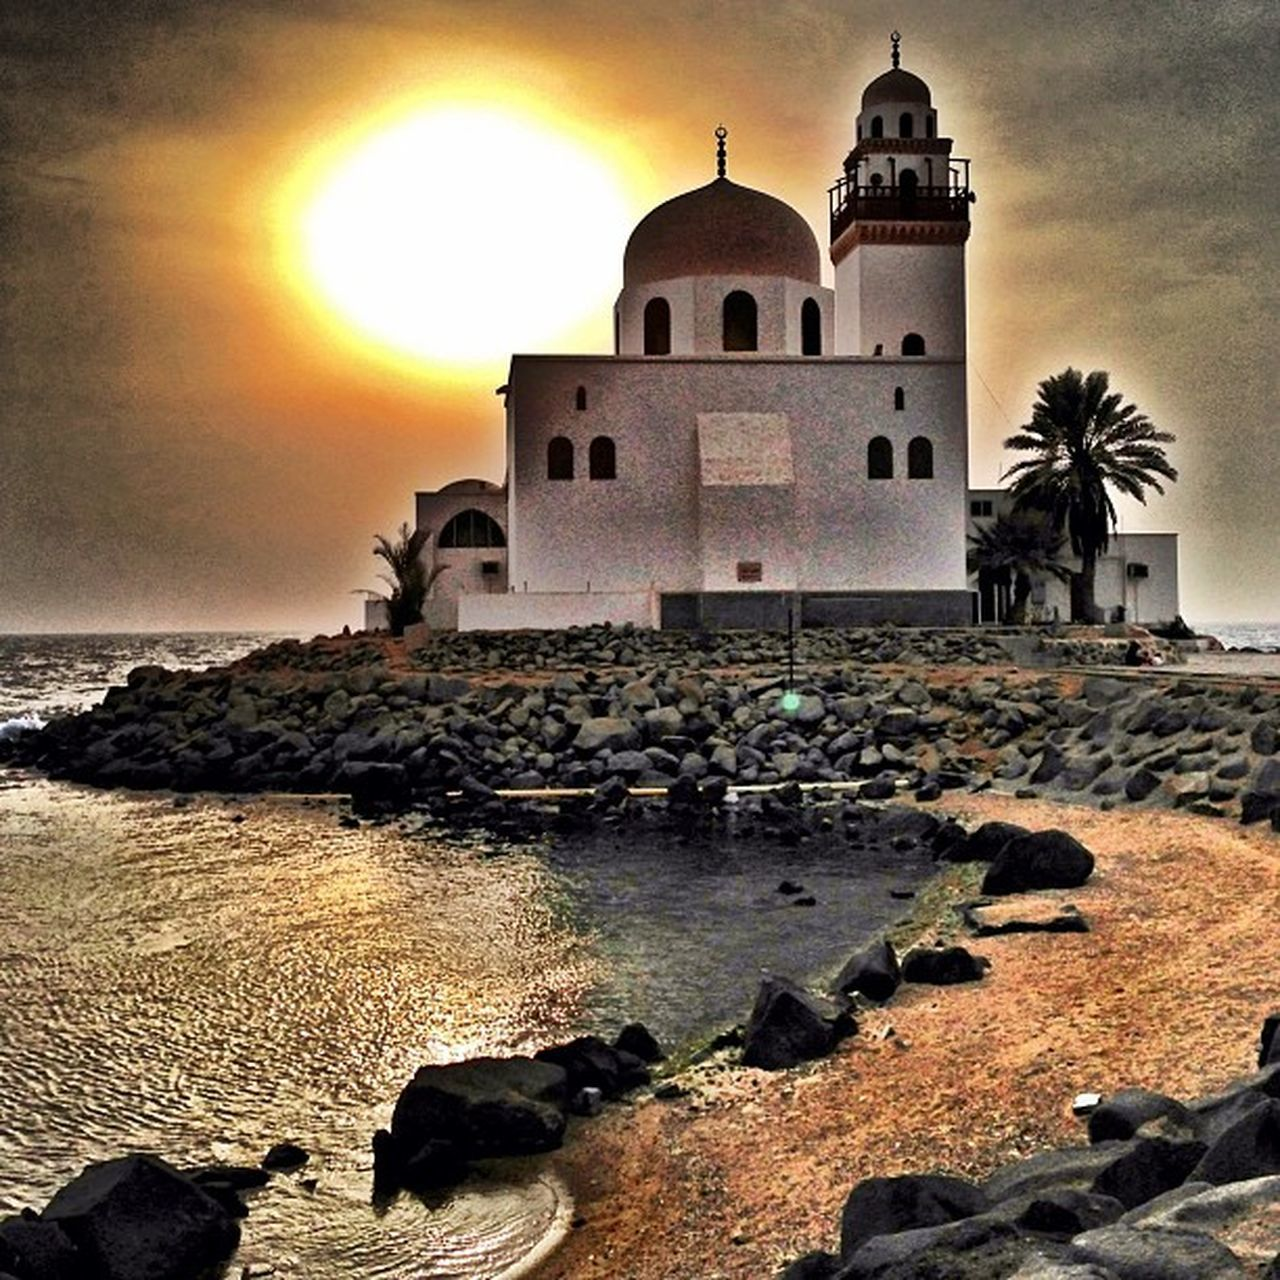 Only in Jeddah Sunset Spiritual spot Cool Saudiarabia WOW كورنيش جدة جدة غير سلم سعودية